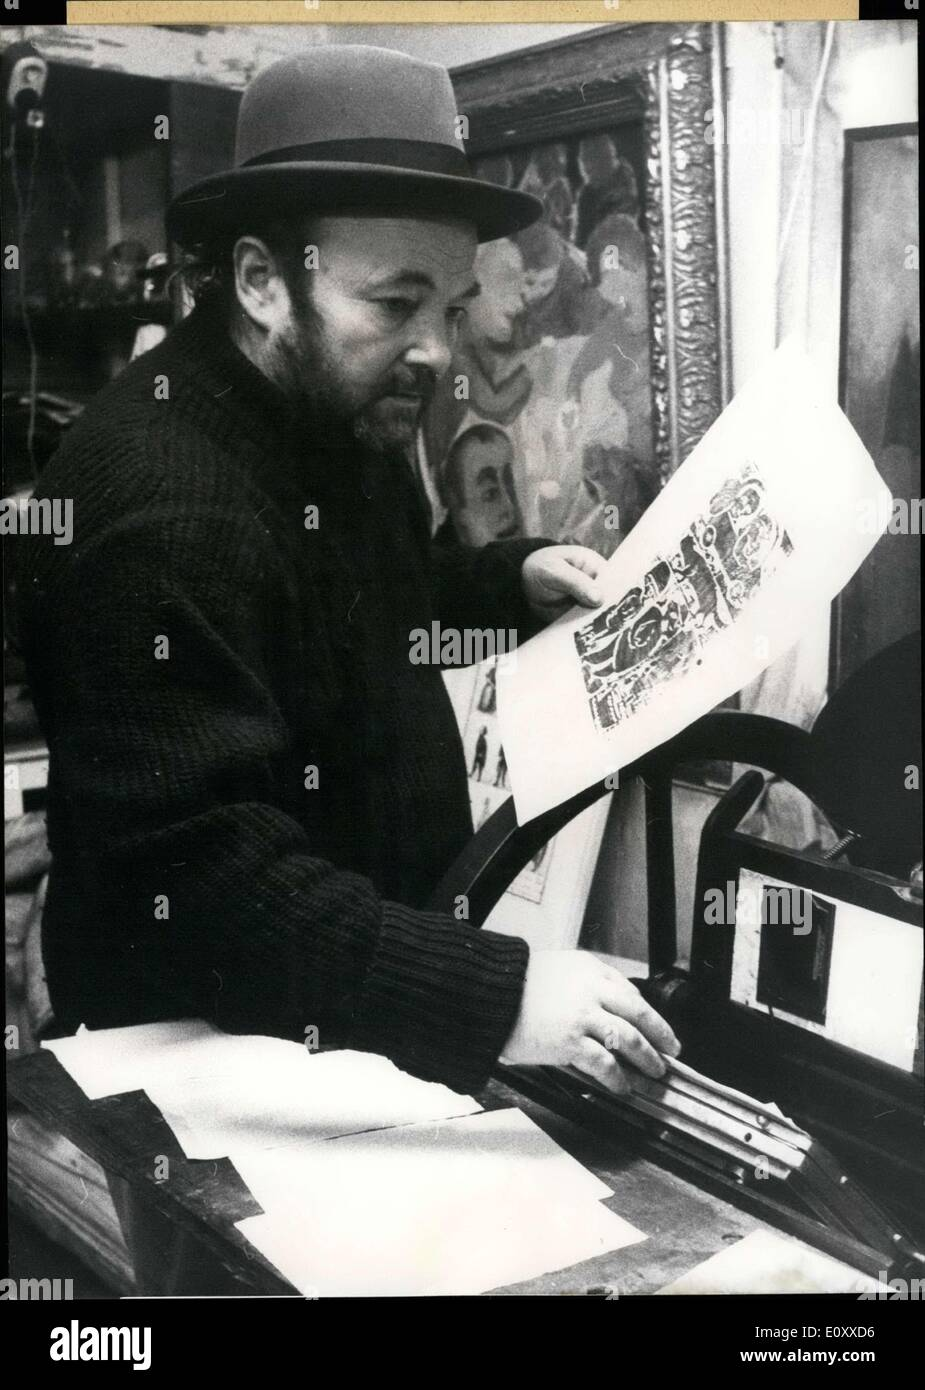 Mar. 05, 1968 - The Berlin original Kurt M?hlenhaupt is an author, composer, printer, and publisher all in one. ''Kurtchen,'' as his friends call him, once led the Kreuzberg photo market to flourish. Now, he is undertaking writing. His first product is named ''Bartgeschichten'' and depicts an incident at Berlin's eastern sector-boundary. The book - whose circulation is ever climbing - is richly illustrated with woodcuts and an authentic ''collector's joy.'' You can buy it directly in Kurtchen's shop and it will surely be signed. Pictured: Kurt M?hlenhaupt at his press machine. - Stock Image